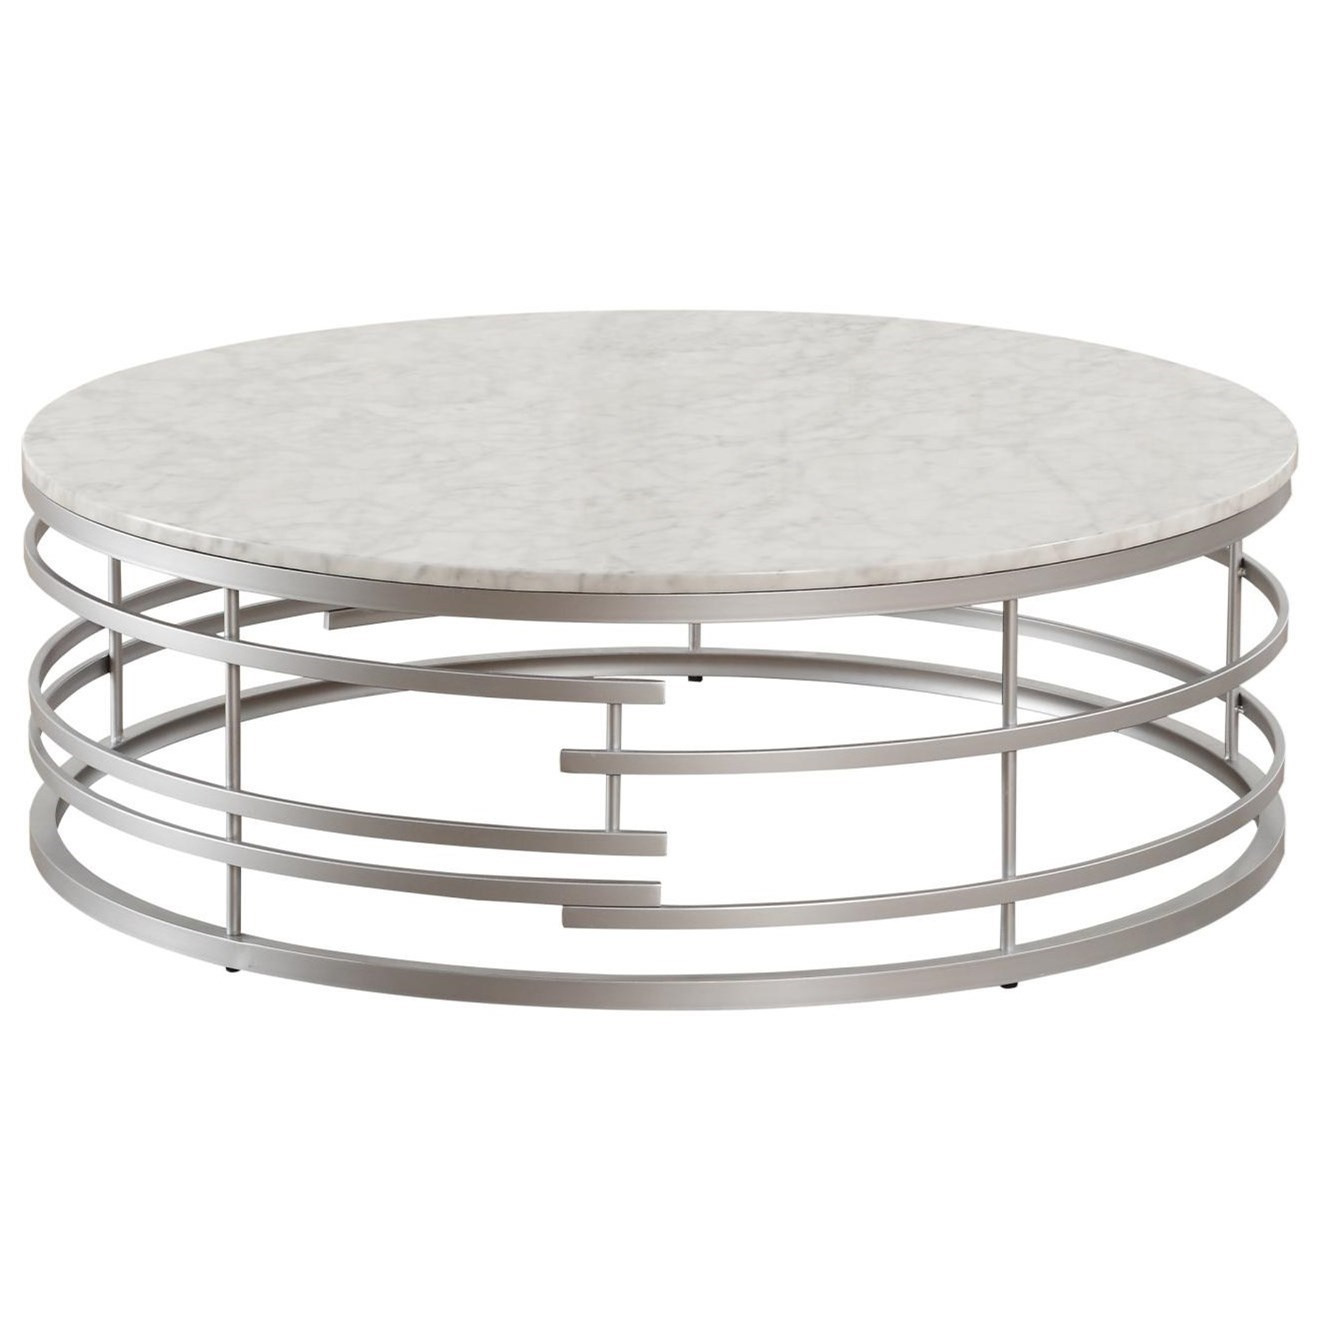 Brassica Large Round Cocktail Table by Homelegance at Darvin Furniture